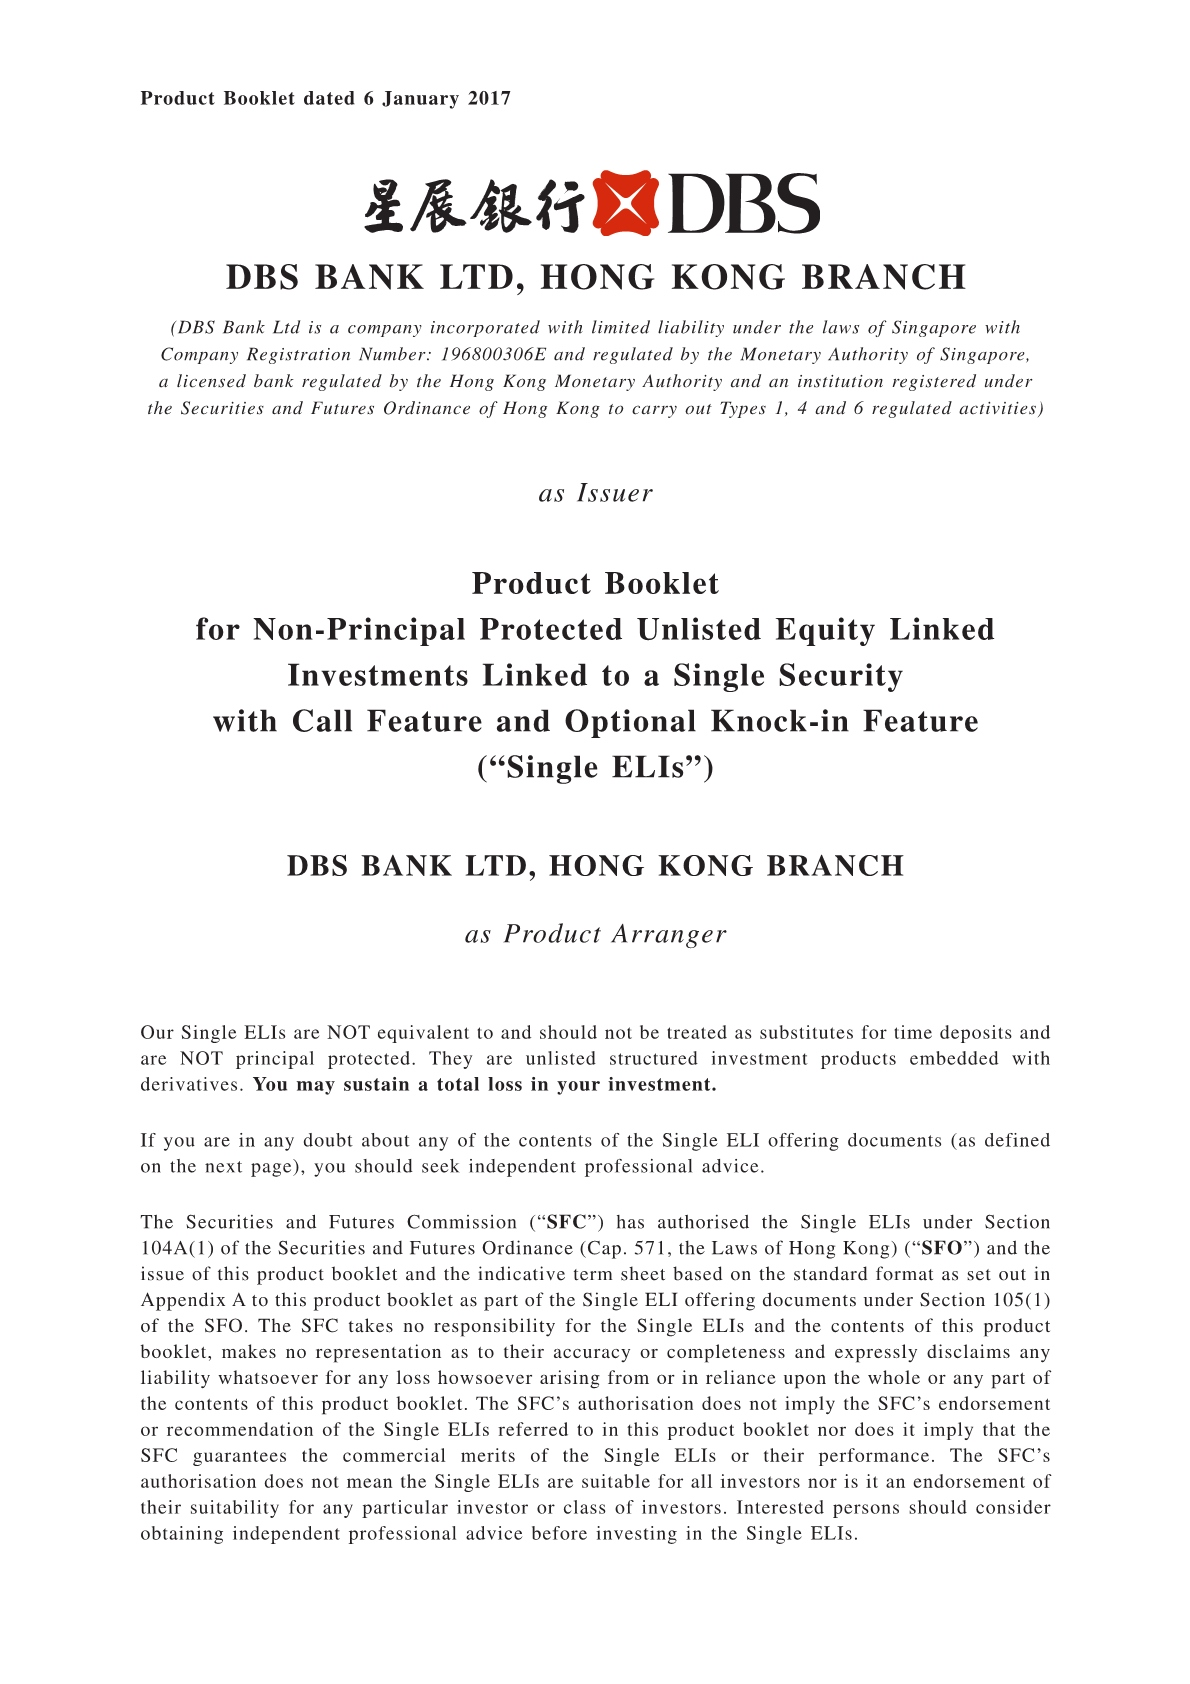 DBS Bank Ltd, Hong Kong Branch – Product Booklet (Single ELIs)